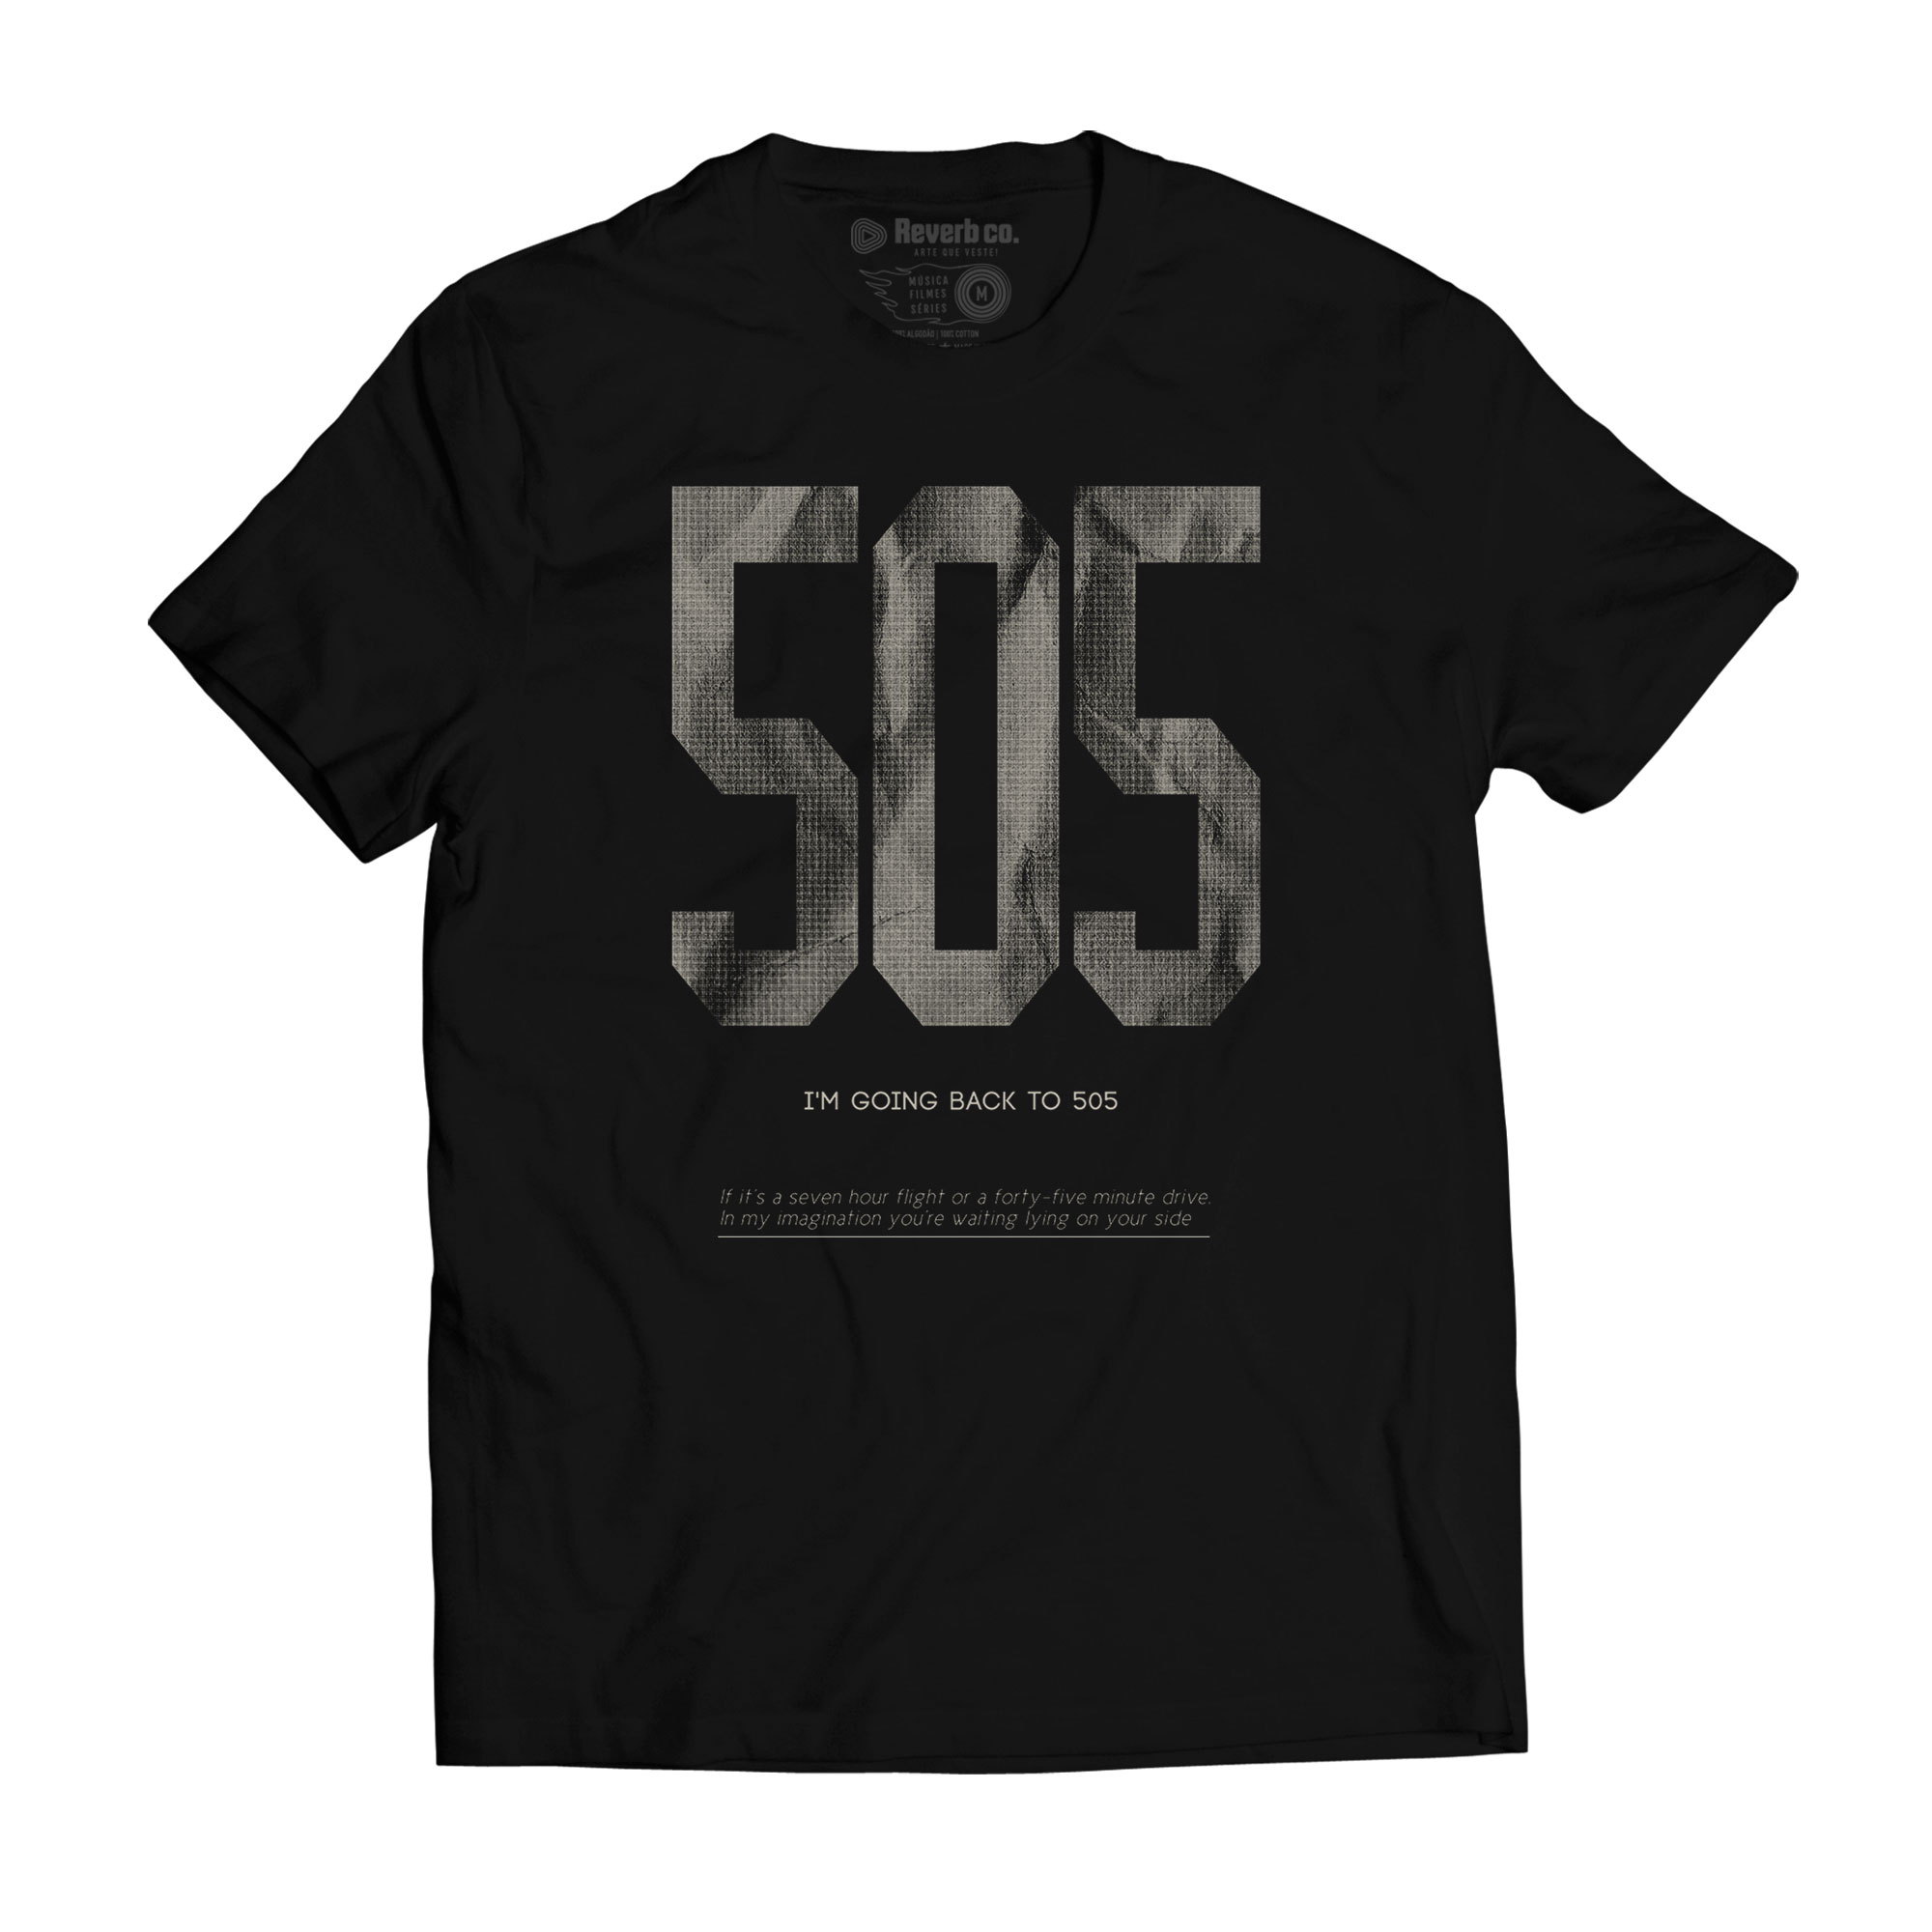 Camiseta Arctic Monkeys - 505 - Masculino